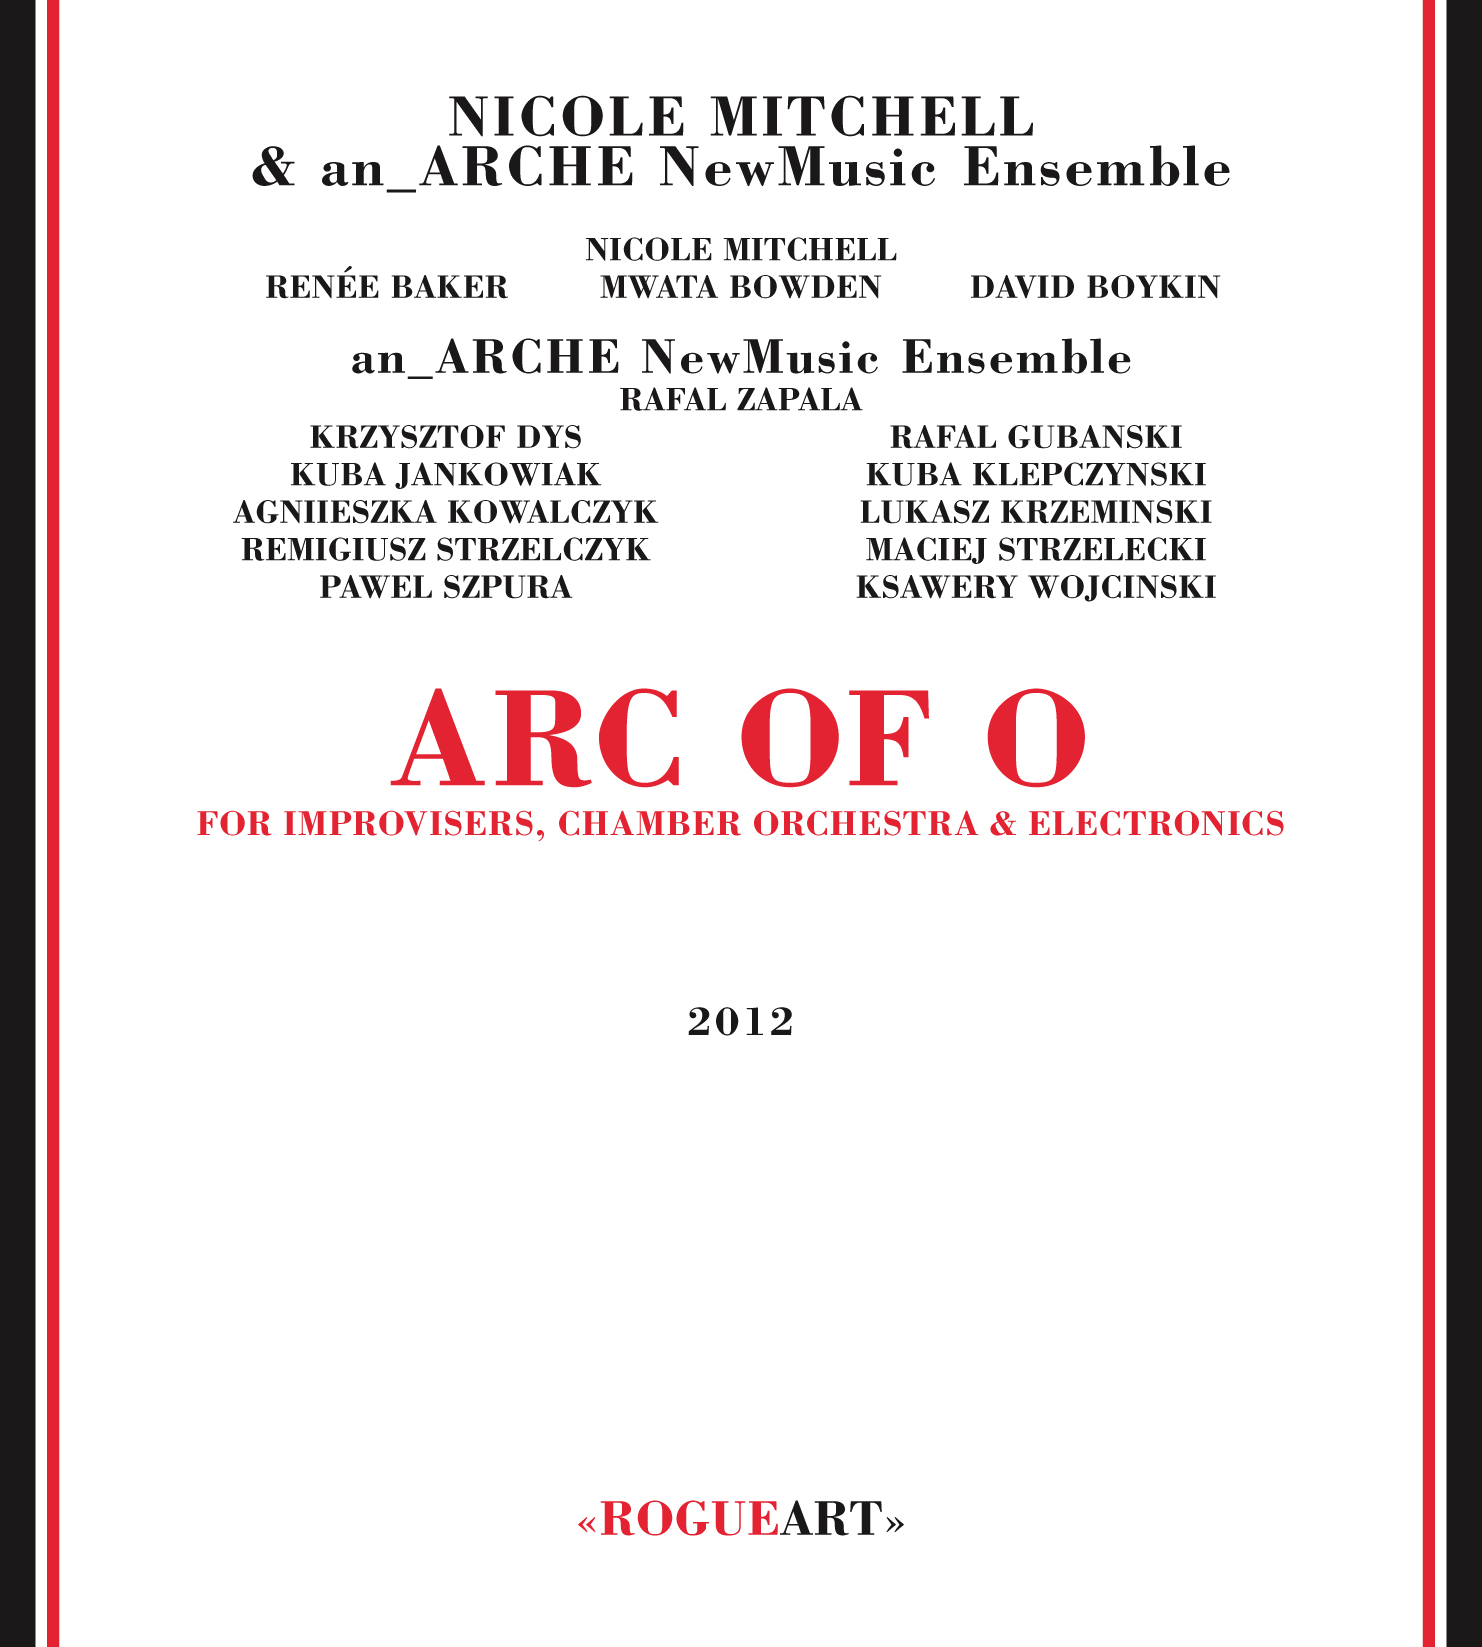 Front cover of the album ARC OF O